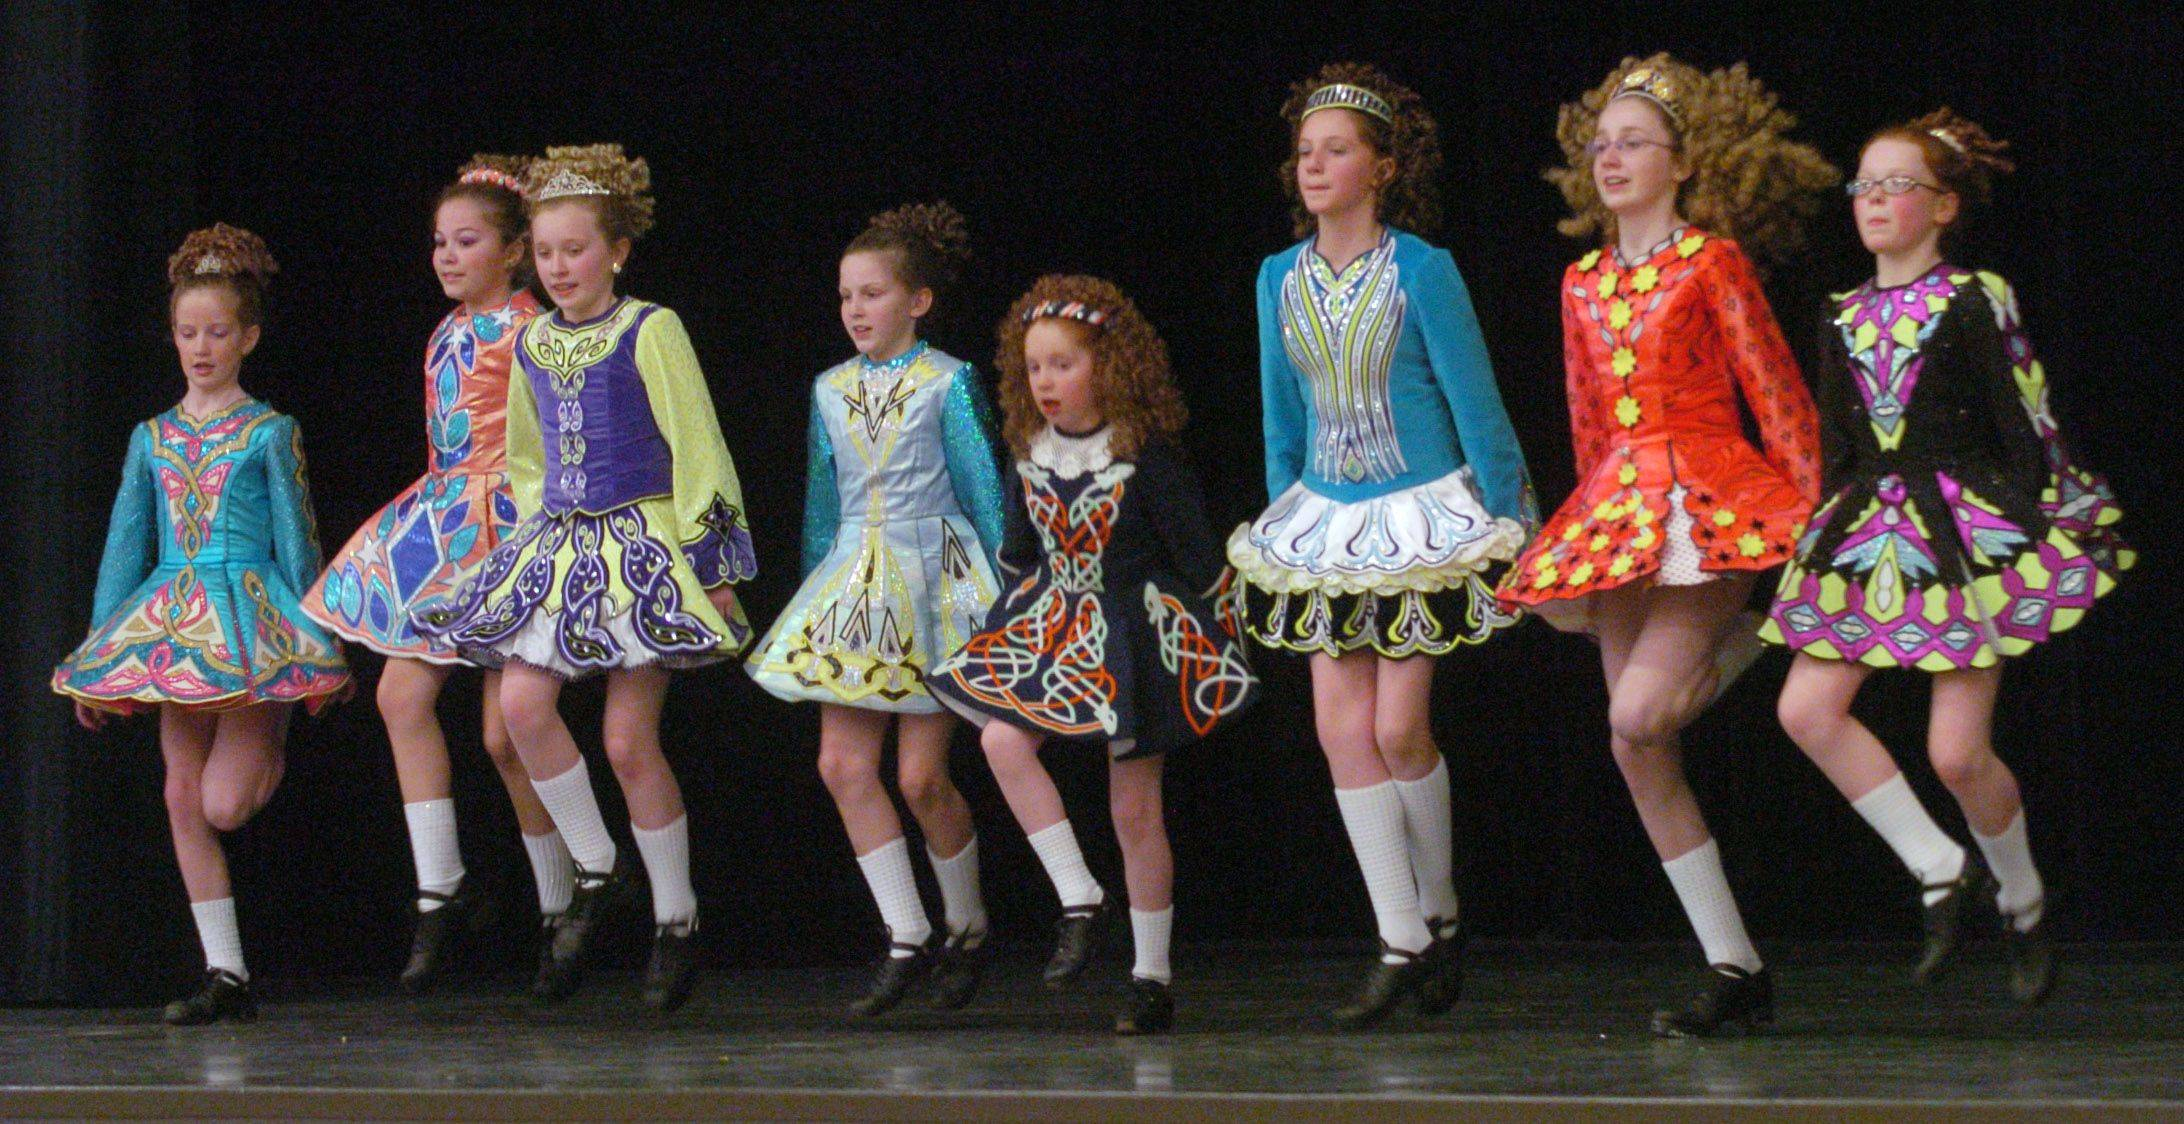 Dancers from Mullane-Healy-Godley School of Irish Dance perform during an assembly at St. James School Thursday in Arlington Heights.